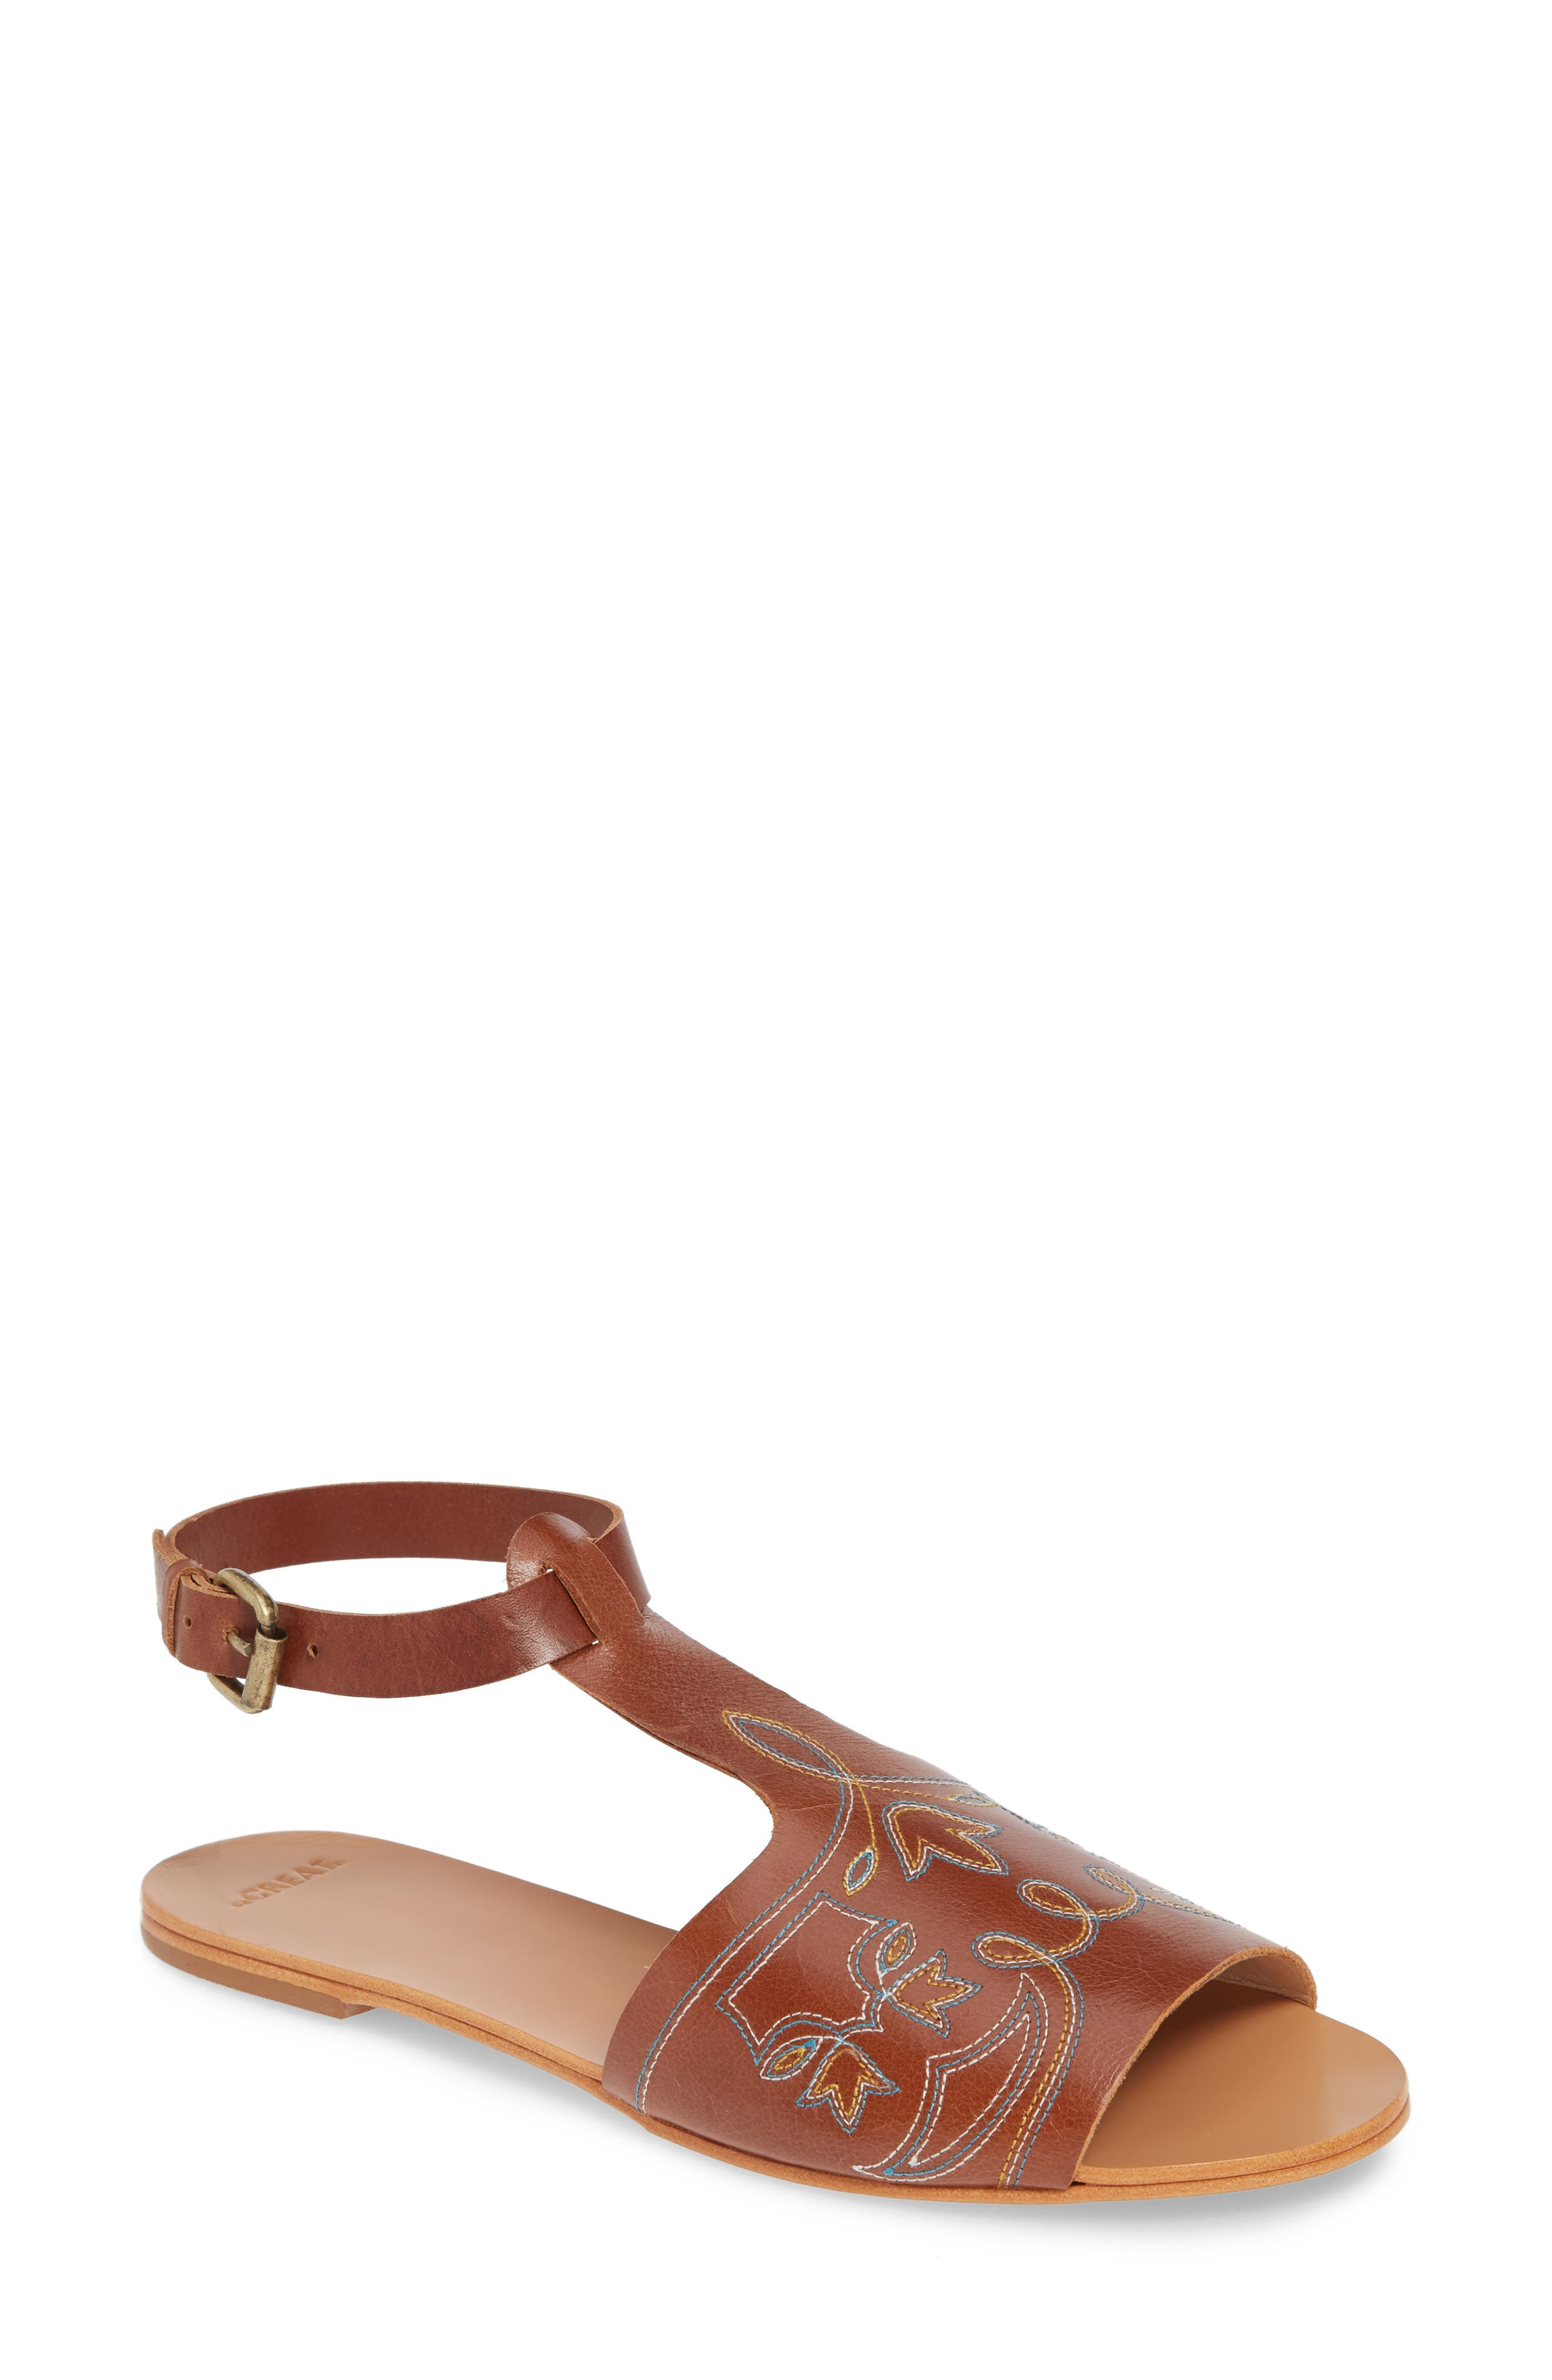 The Great. The Western Sandal, Brown